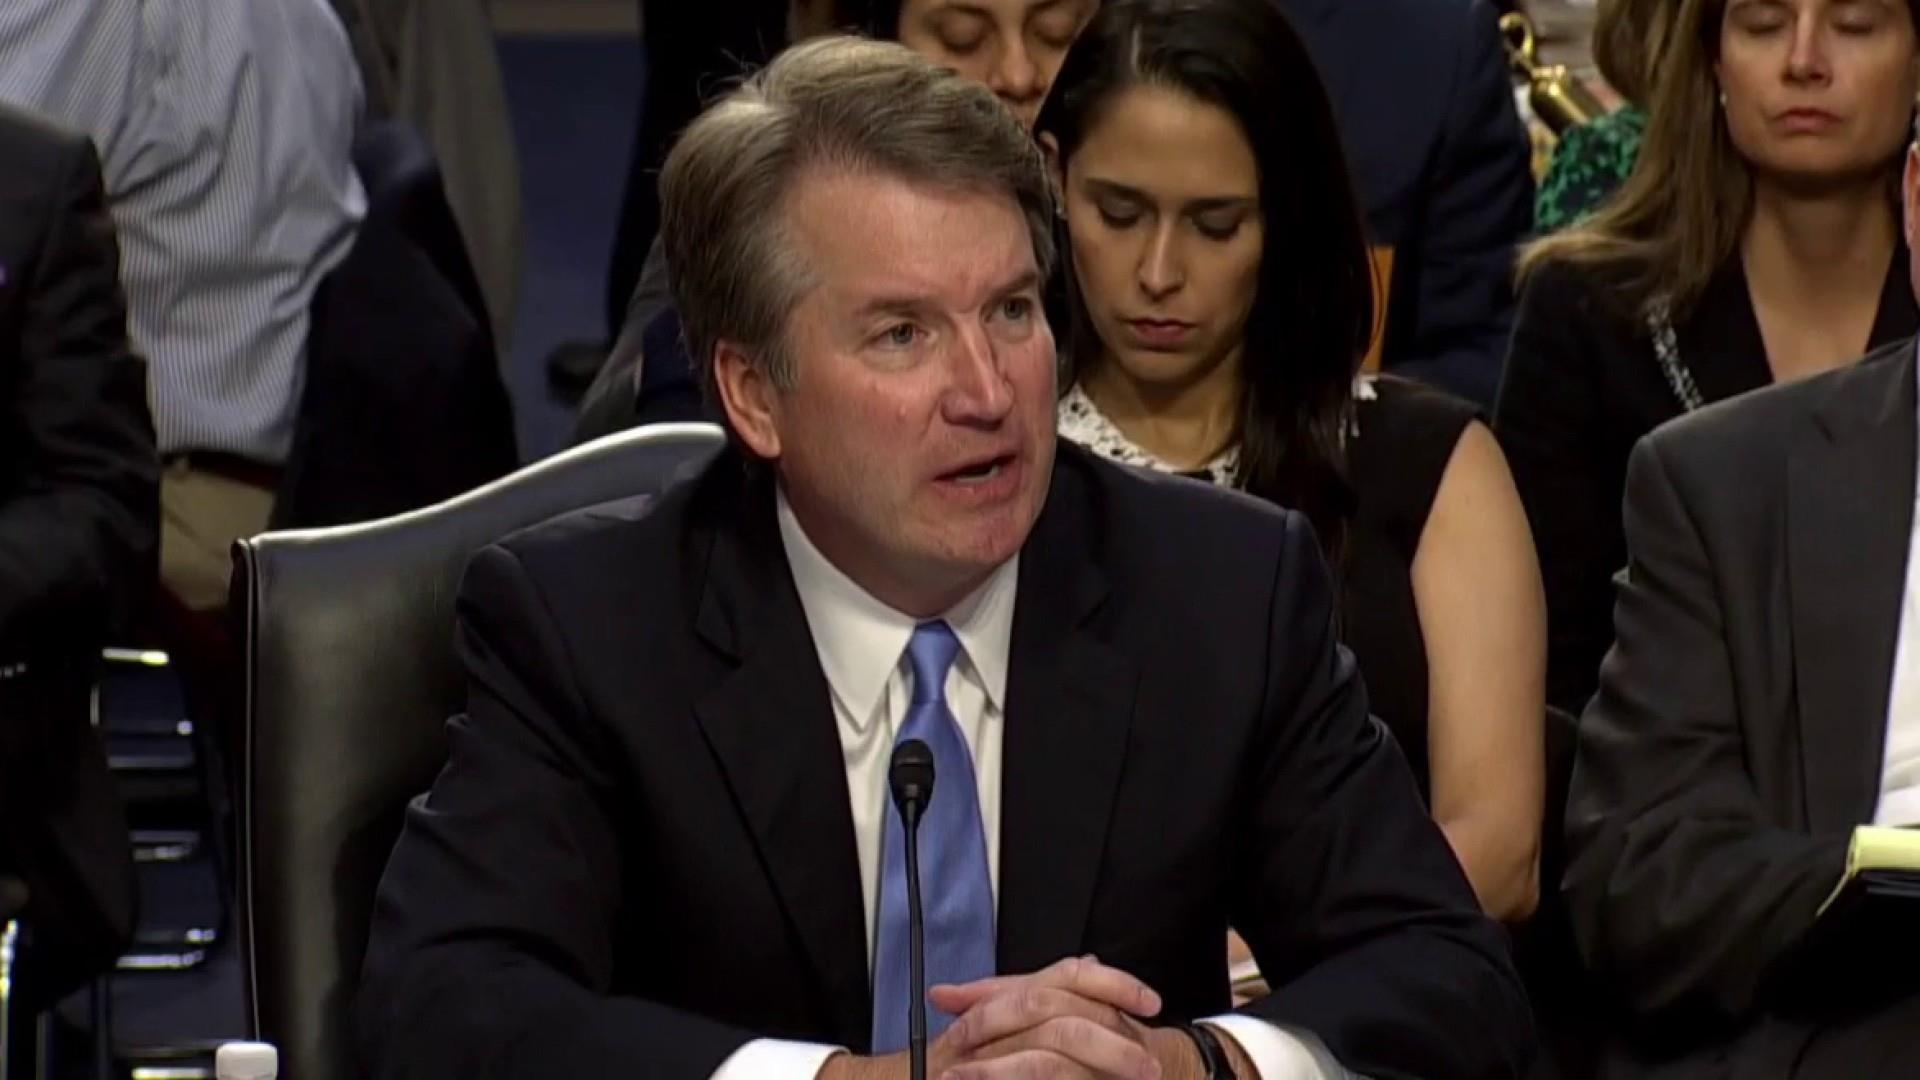 Slew of Dems call for Kavanaugh impeachment over newly revealed sexual misconduct claims